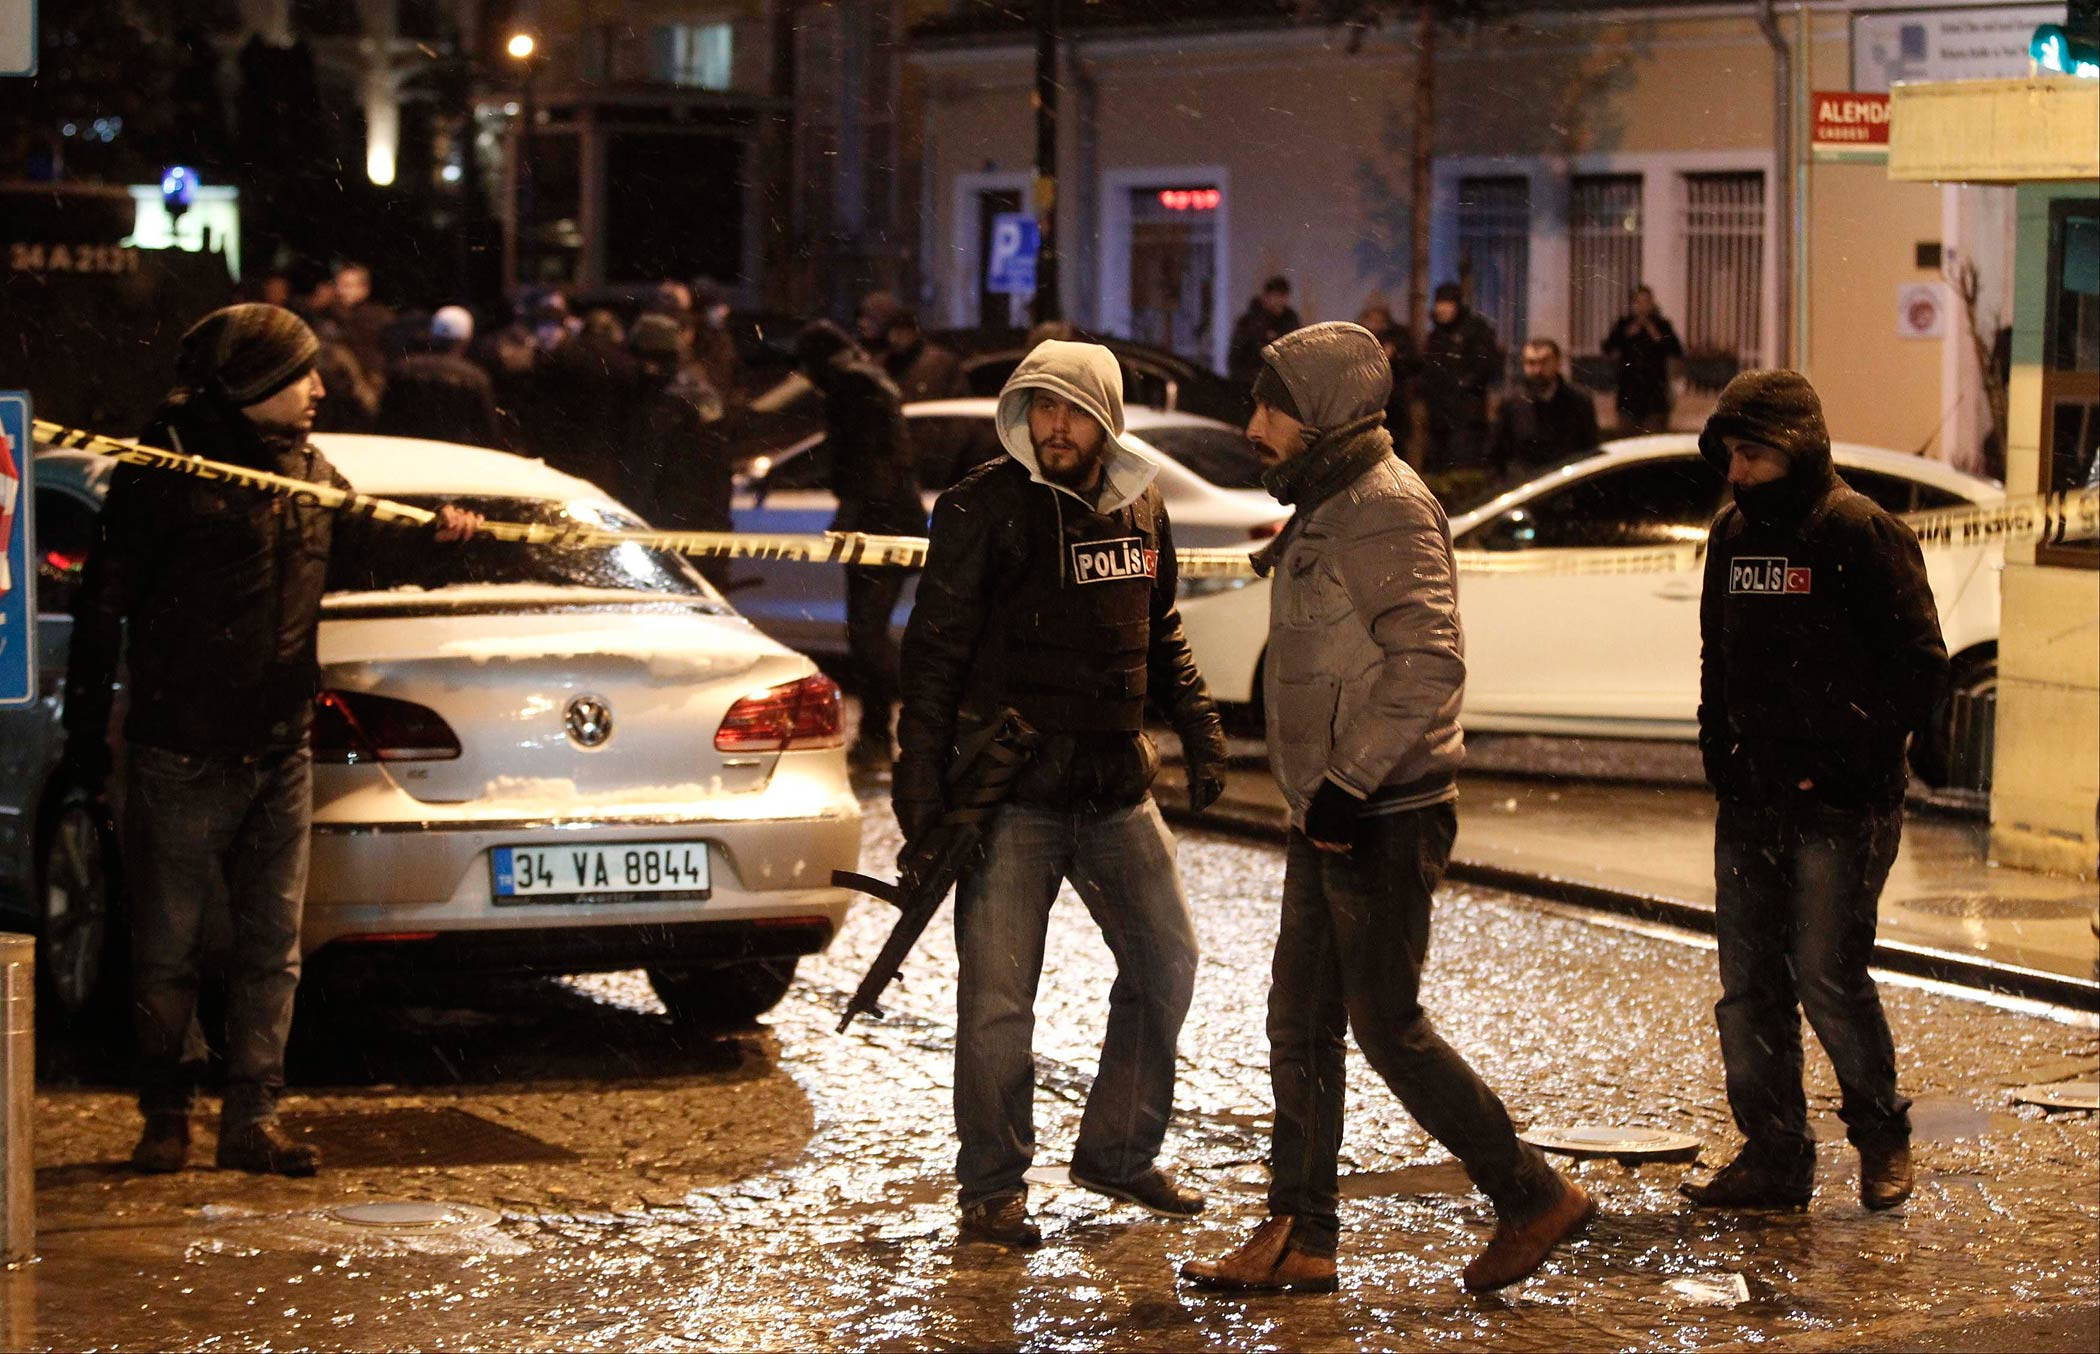 Police officers stand guard at the scene of a bomb blast in Istanbul, Turkey on Jan. 6, 2015.